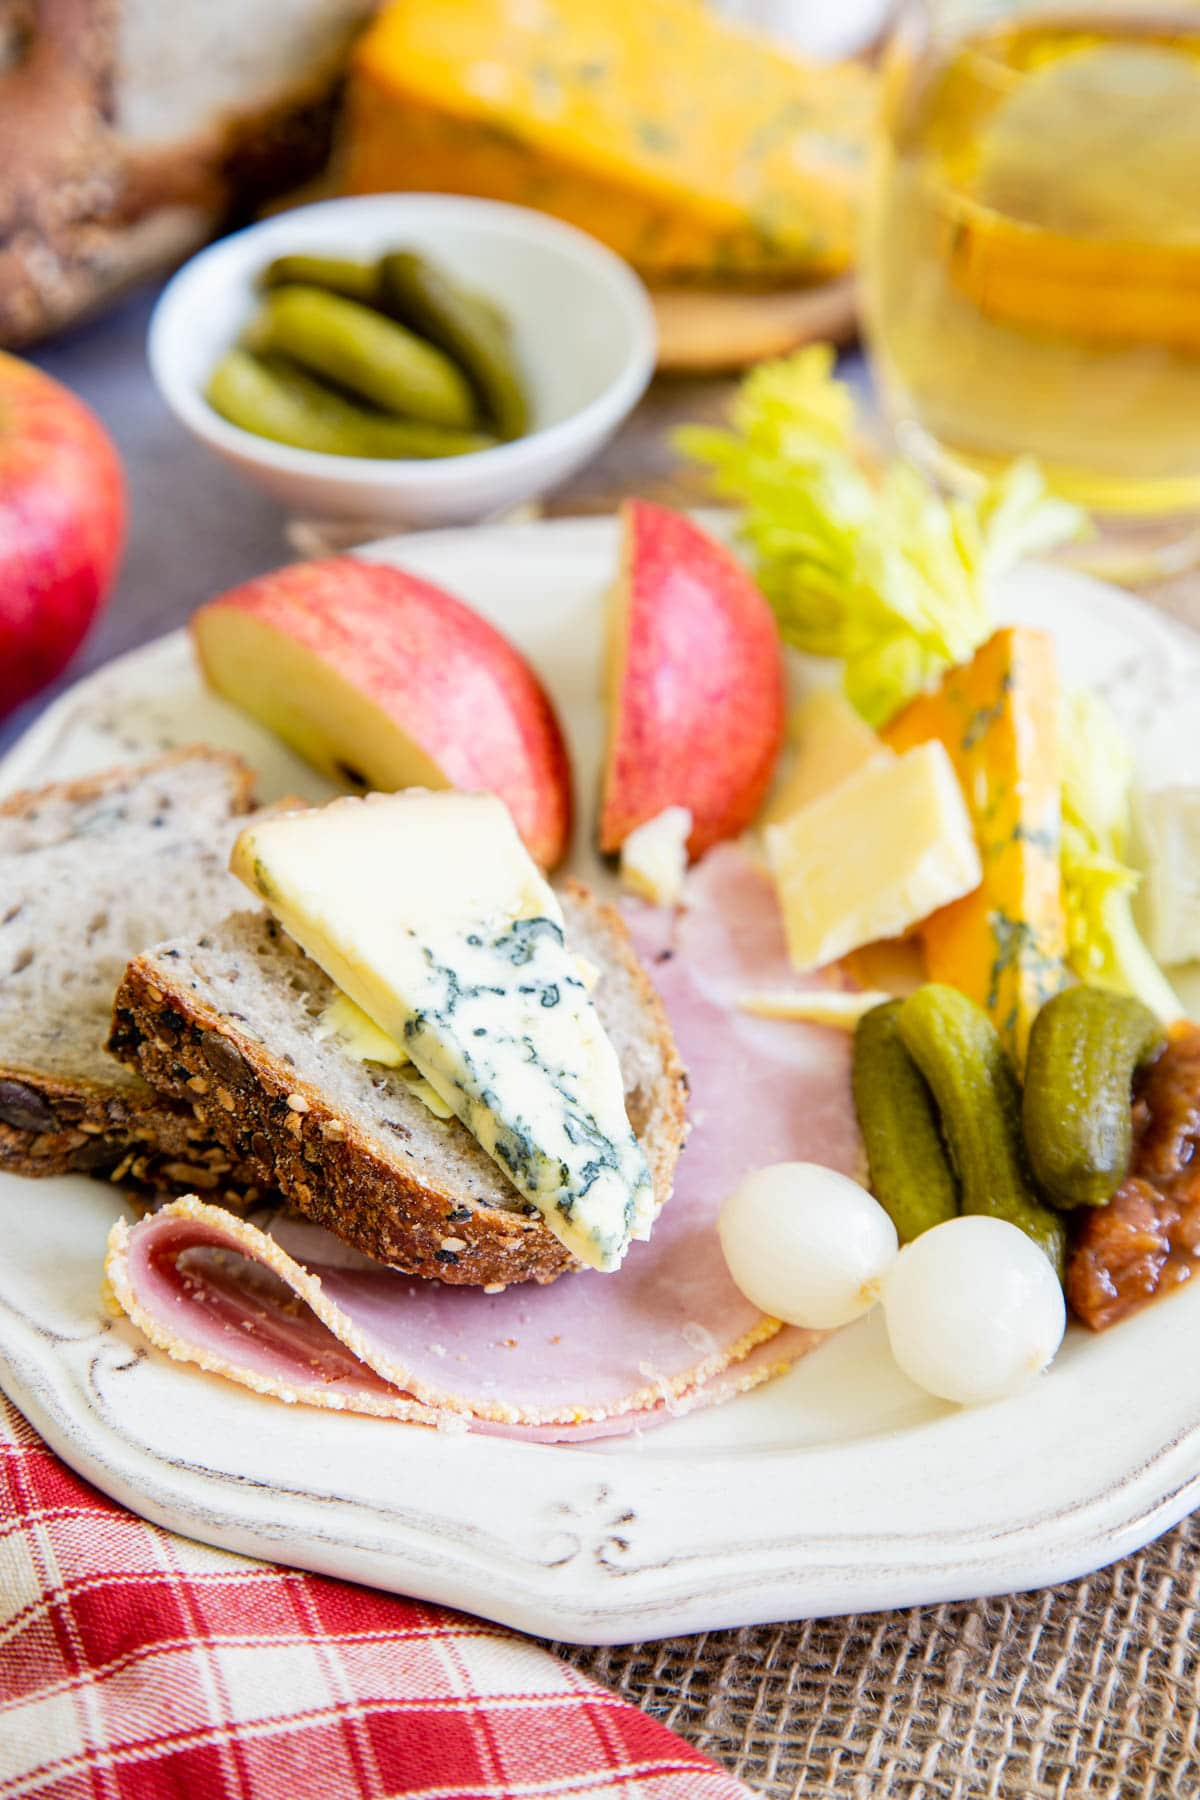 Close up of a slice of cheese on bread on a ploughmans lunch. Also on the plate are ham, garnishes, apples, celery, and more cheese.